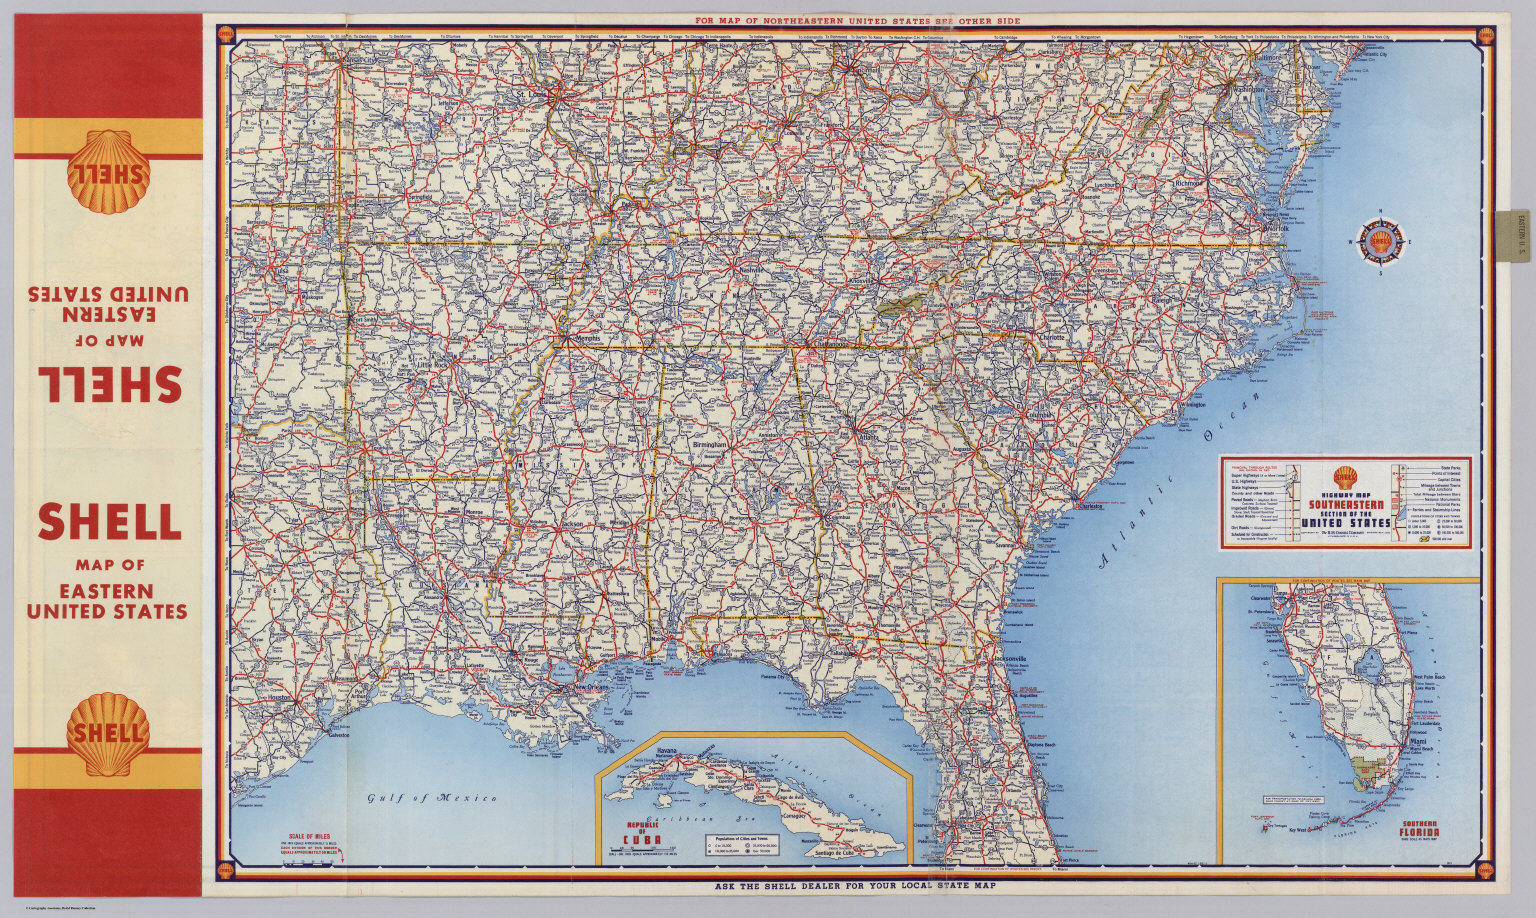 Map Of Southeastern United States Pictures To Pin On Pinterest - Southeast united states map and capitals